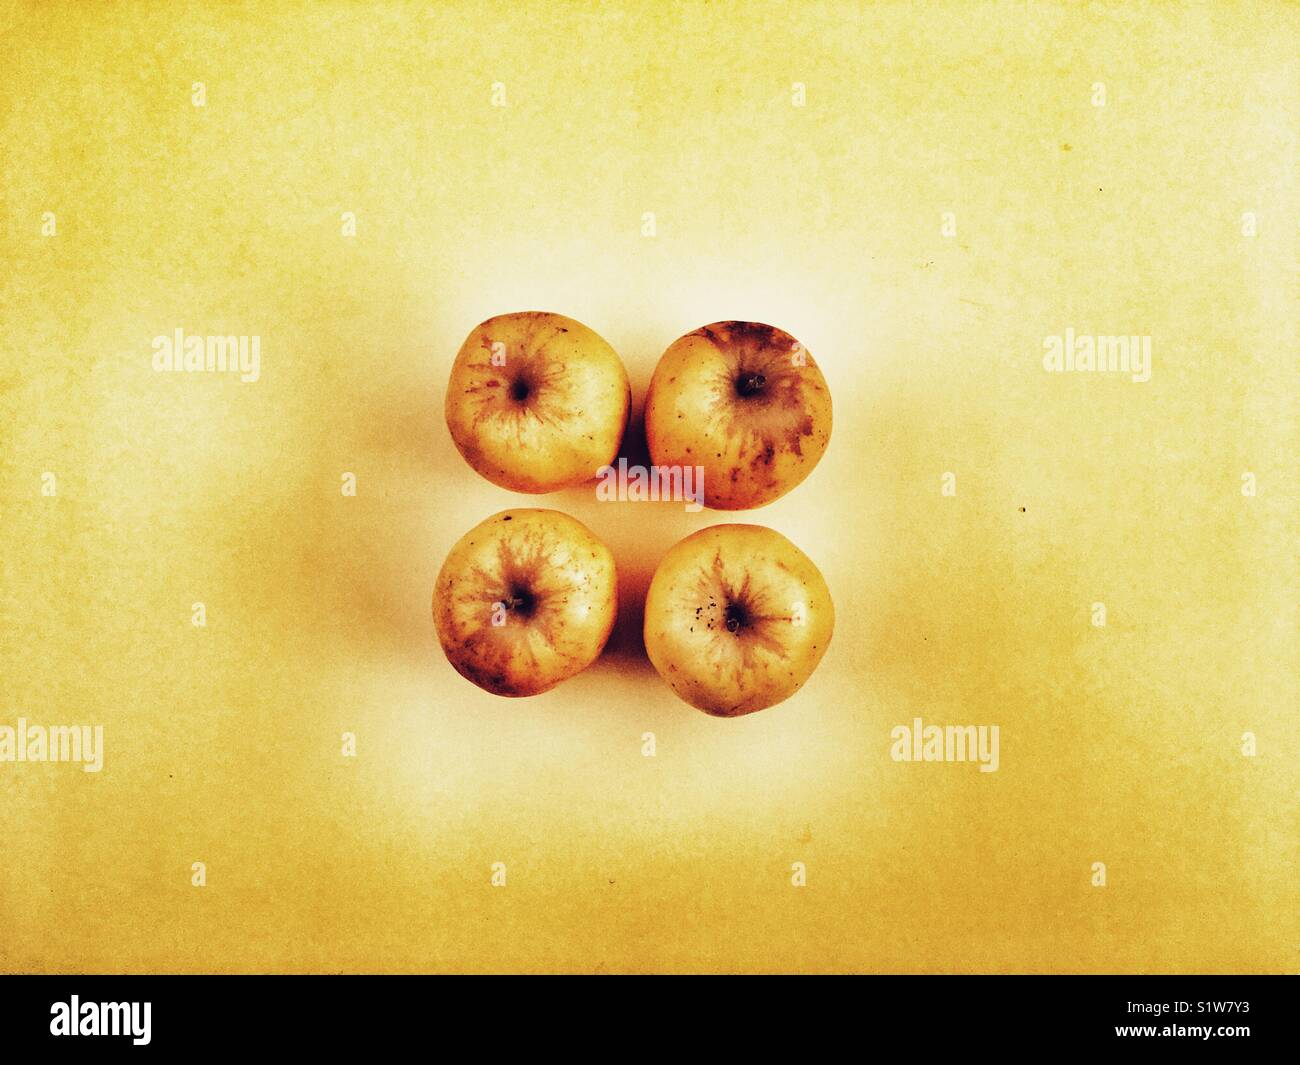 Opal English apples from Norfolk - Stock Image